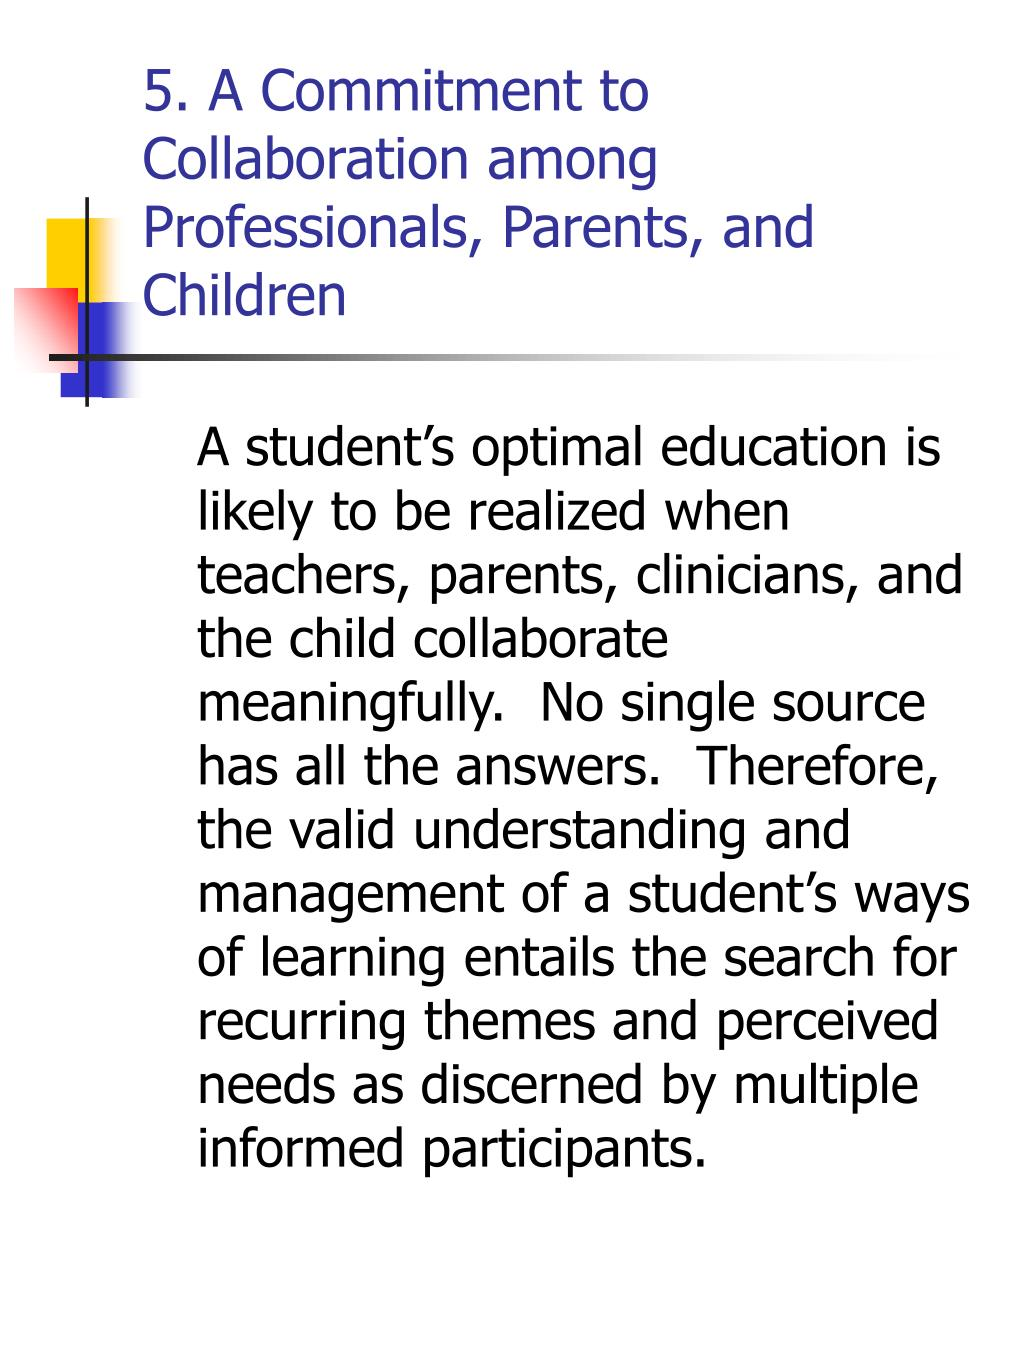 5. A Commitment to Collaboration among Professionals, Parents, and Children